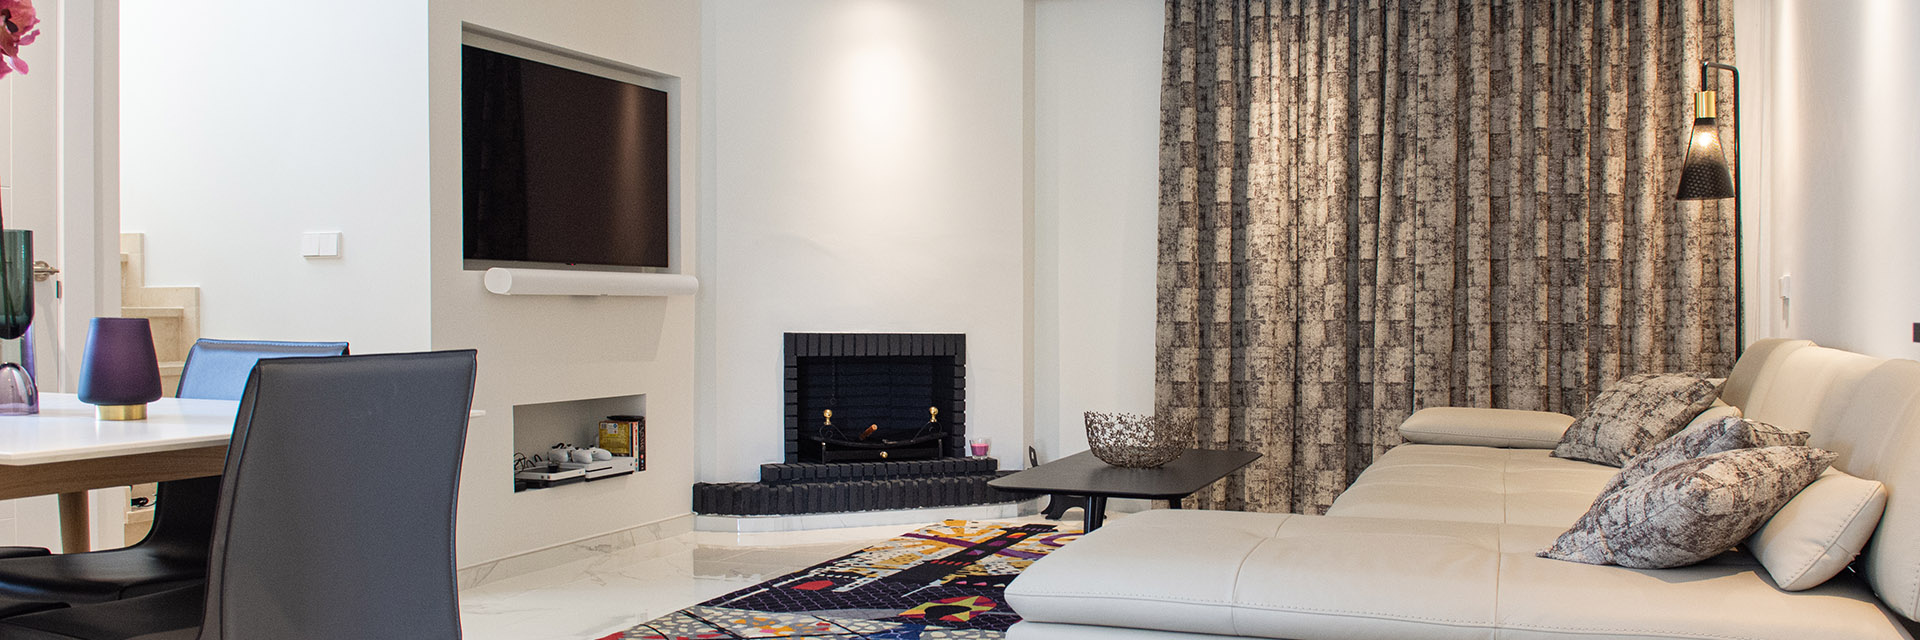 Refurbished living room with fireplace and built in television